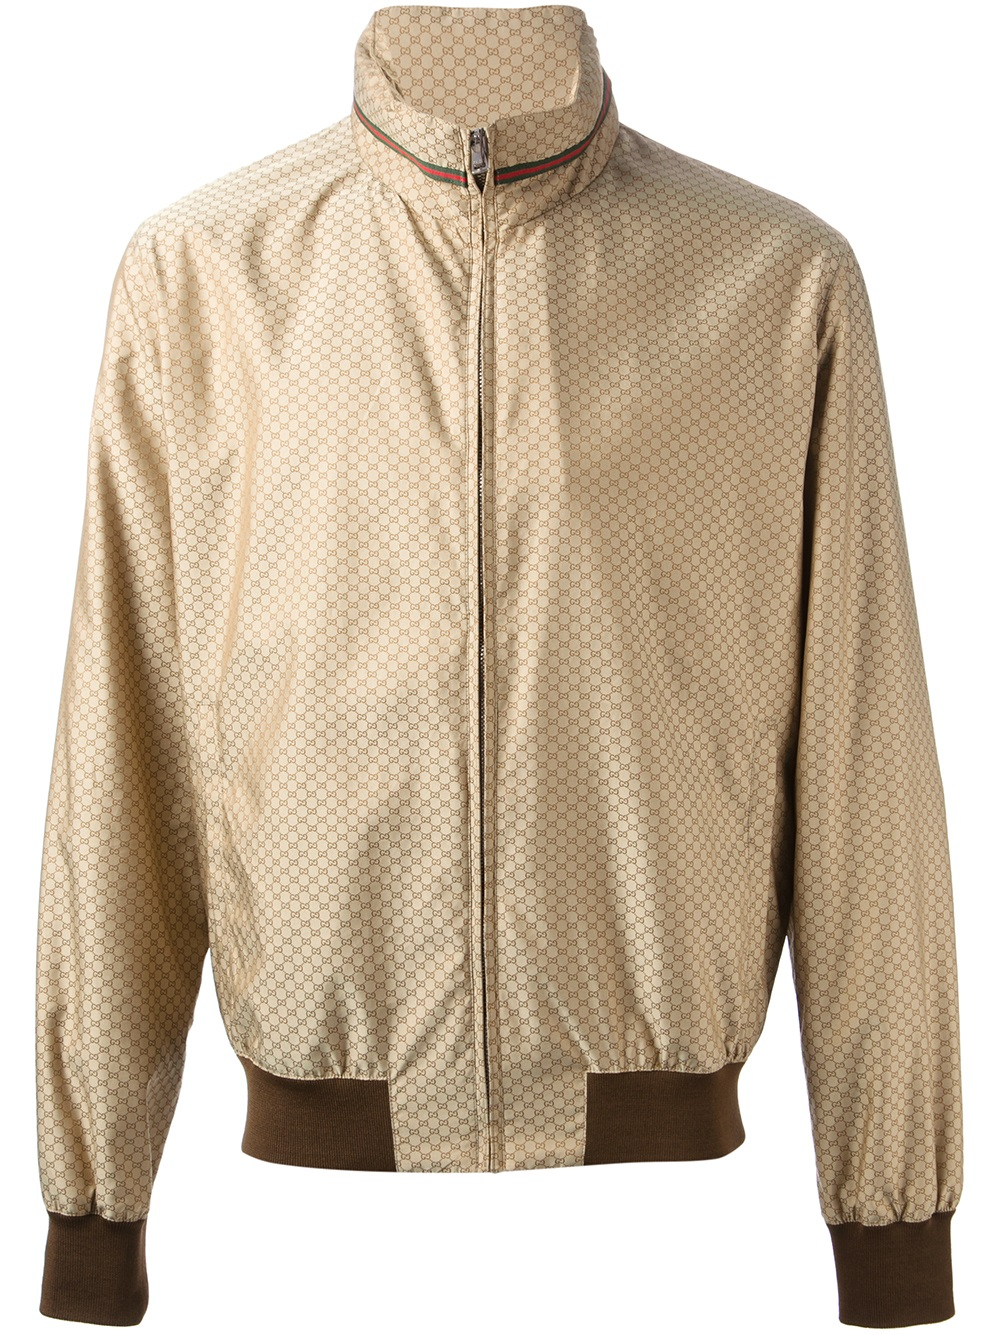 Lyst Gucci Monogram Bomber Jacket In Brown For Men